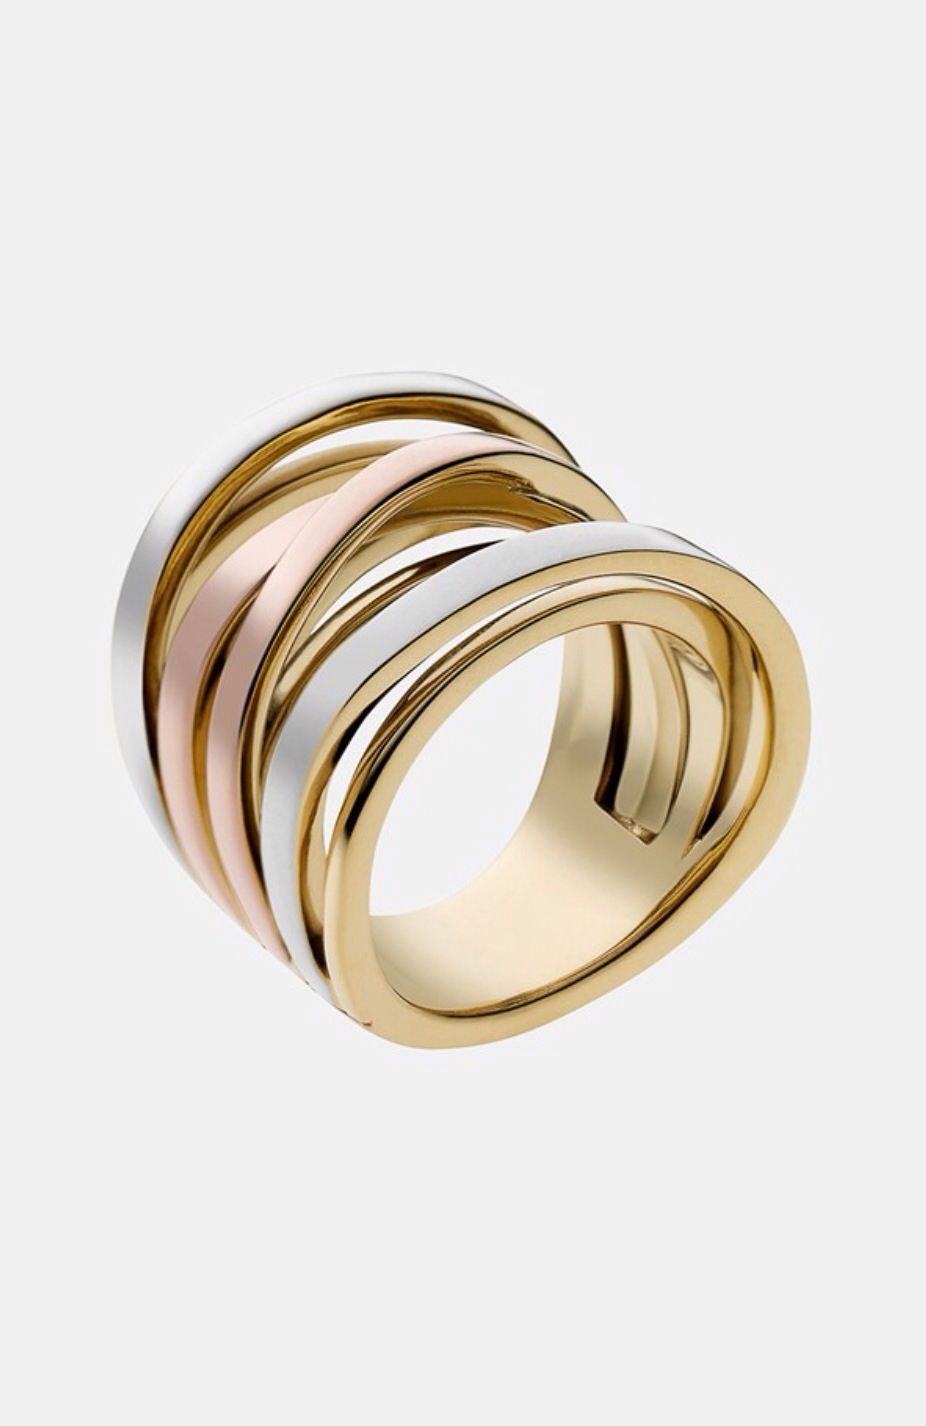 20++ Michael kors jewelry outlet online viral